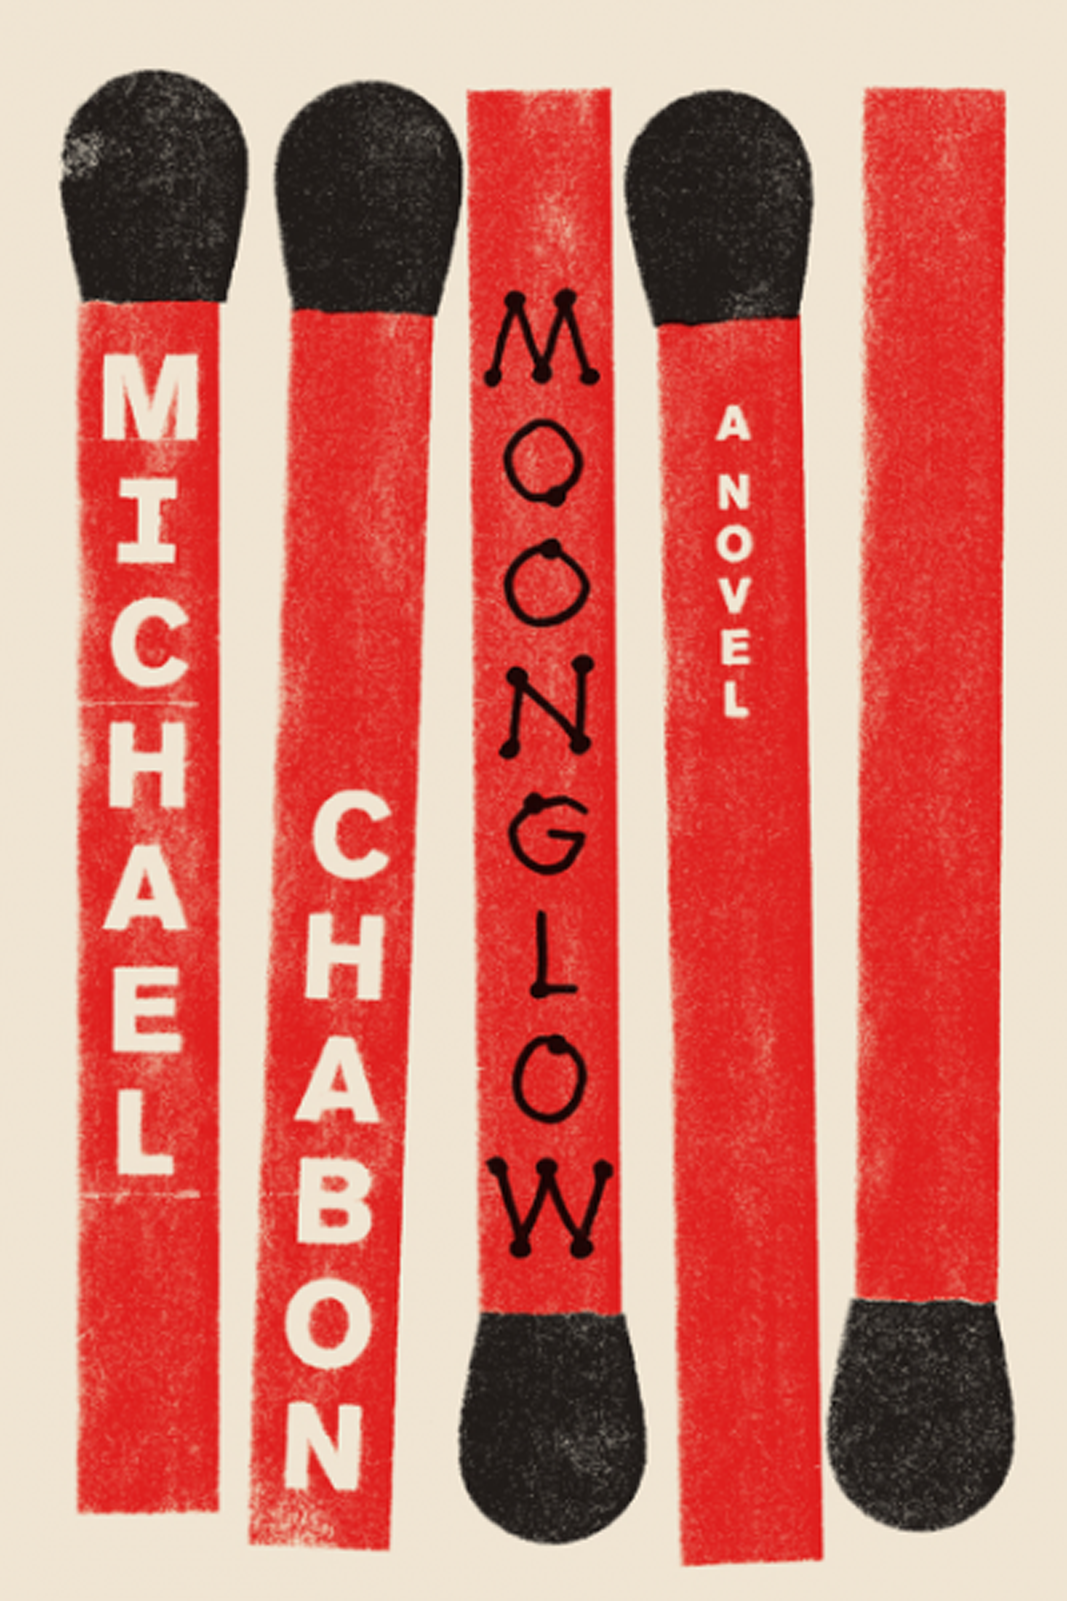 <p><strong><em>Moonglow</em></strong></p> <p>By Michael Chabon</p> <p>Pulitzer Prize-winning author Michael Chabon's latest novel is based on the stories of his own terminally ill grandfather, who, thanks to the tongue-loosening effects of his powerful painkillers, told Chabon stories he'd never heard before just before he died in 1989.</p> <p>Touching on themes as wide-ranging as madness, war and adventure, sex and marriage and desire, existential doubt and, above all, the destructive impact and creative power of keeping secrets and telling lies, <em>Moonglow</em> is well worth your time.</p>